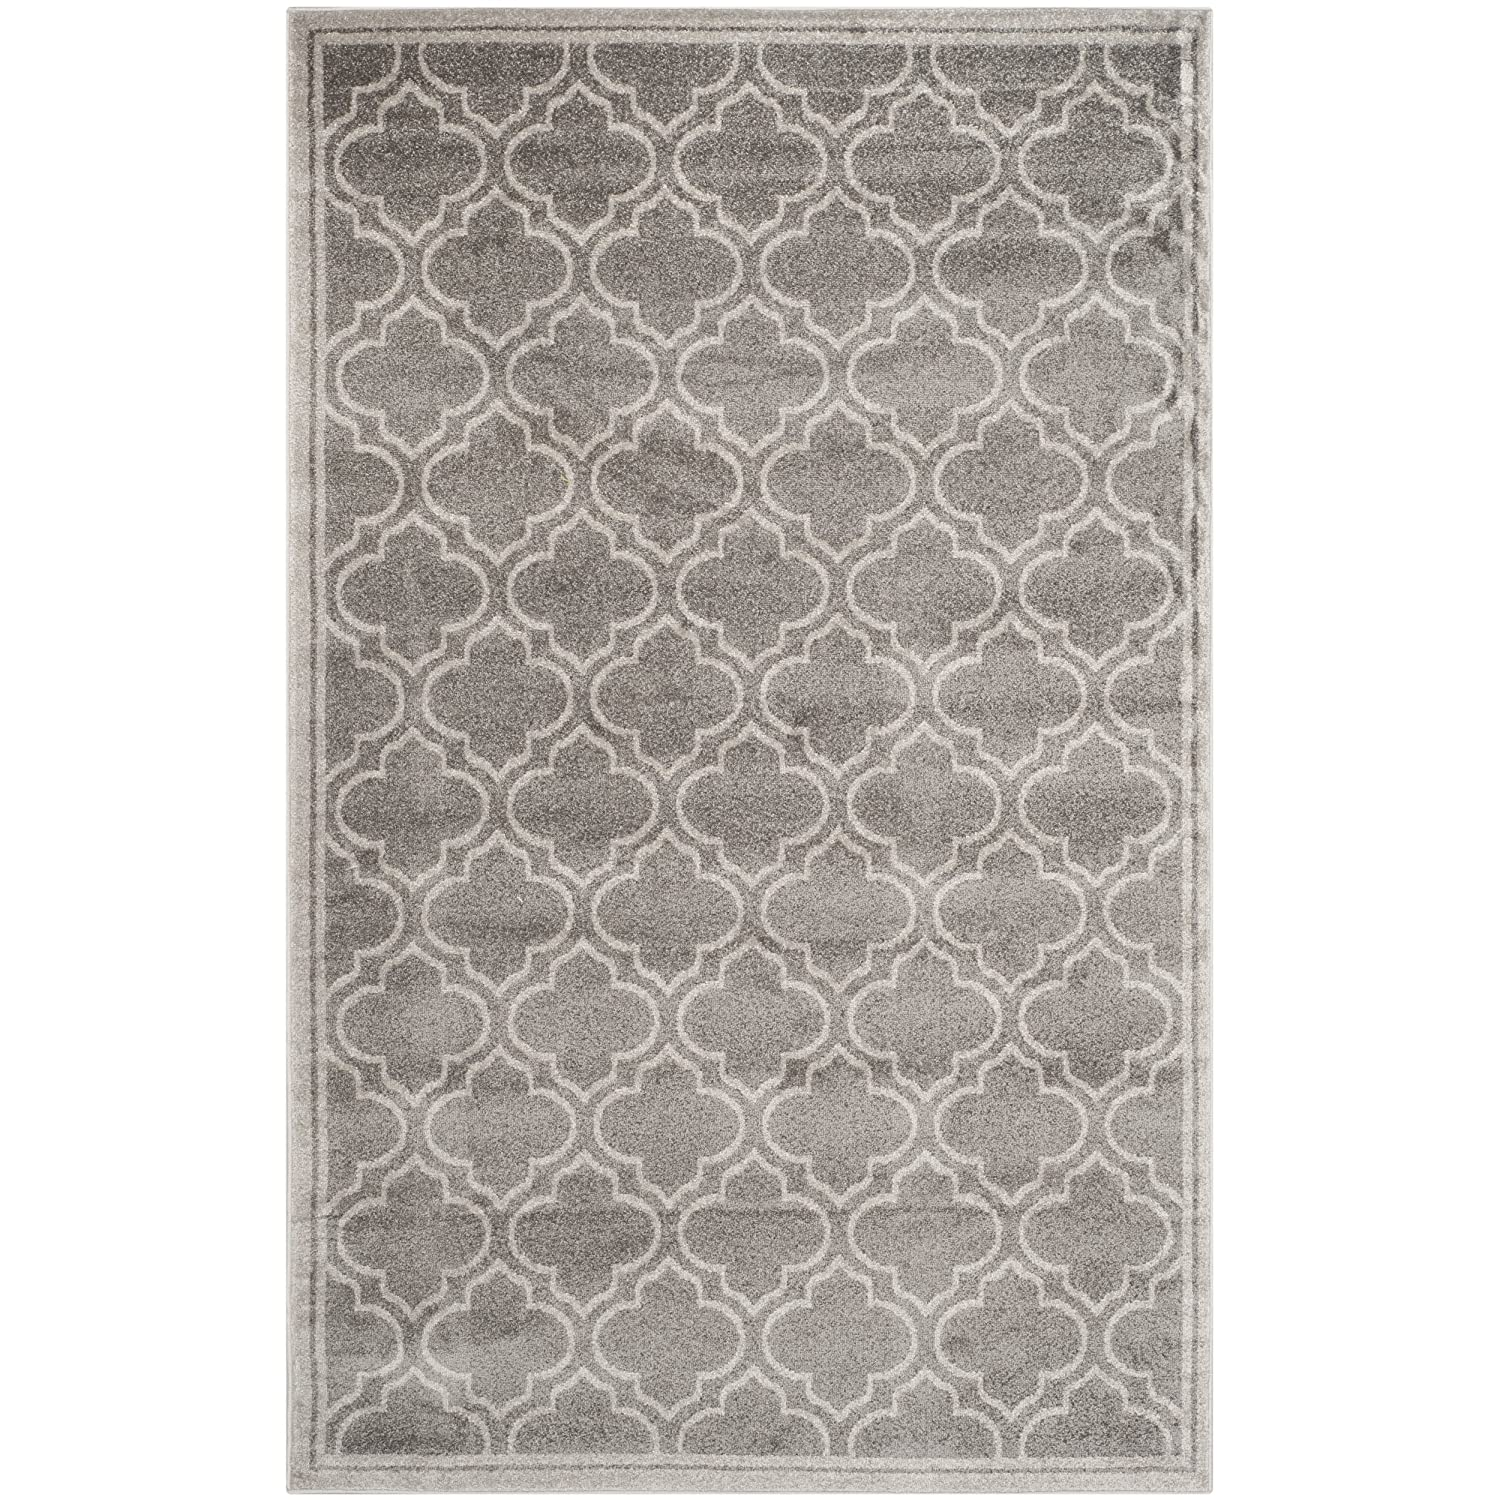 amazoncom safavieh amherst collection amt412c grey and light grey indoor outdoor area rug 6u0027 x 9u0027 kitchen u0026 dining